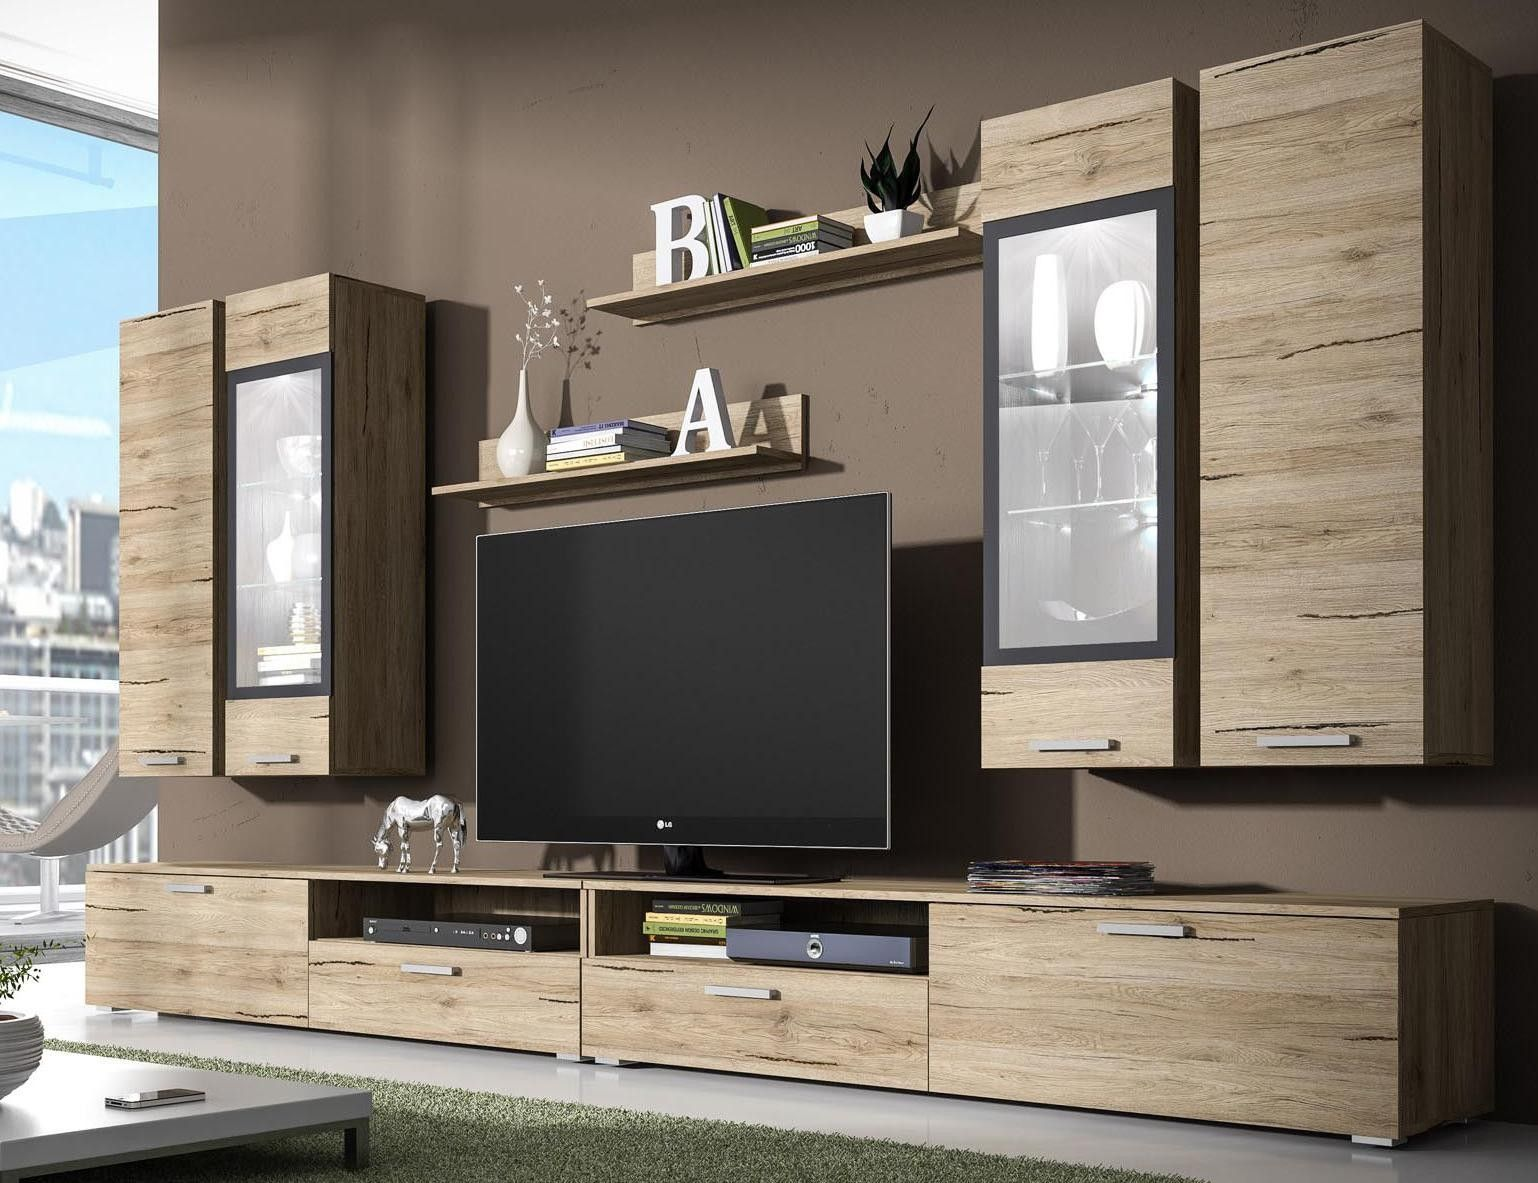 Ensemble Meuble Tv Mural Nova Meuble Tv Design Pas Cher  # Photo Meuble Tv Design